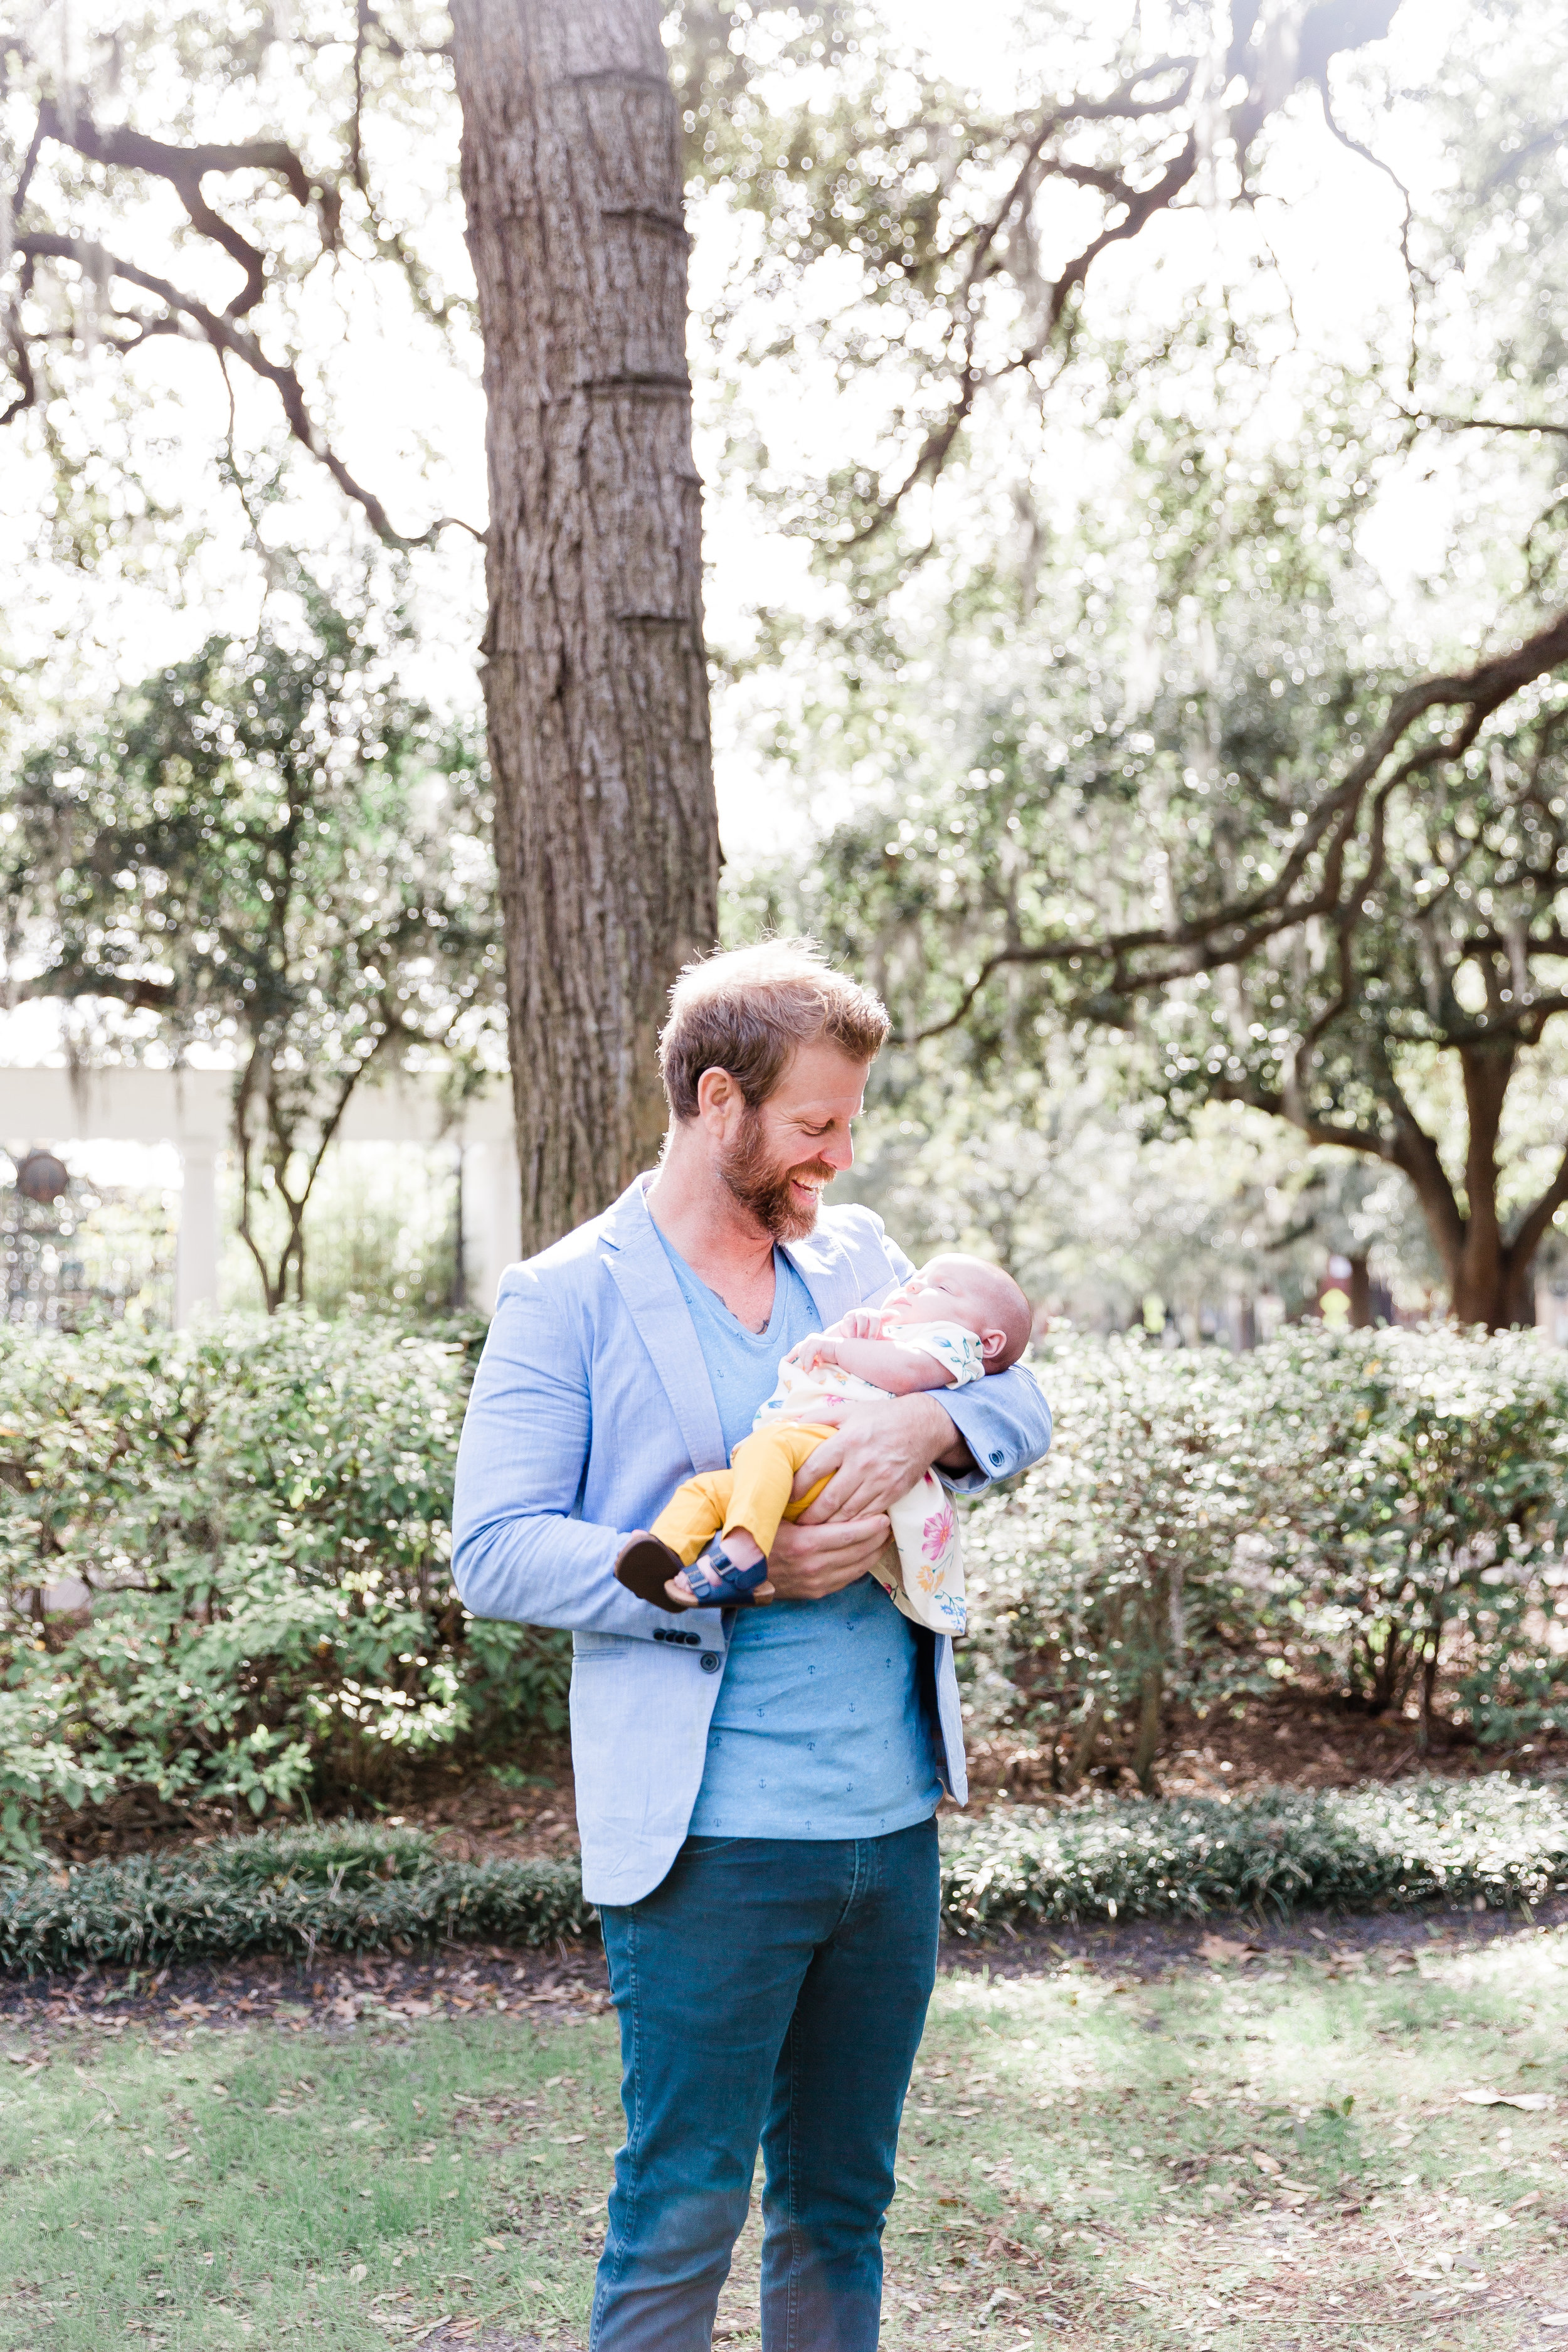 Valentines_mini_sessions_Savannah_Georgia_Photographer_Southern_Lens_Photography_Breigh_Ard_12.jpg